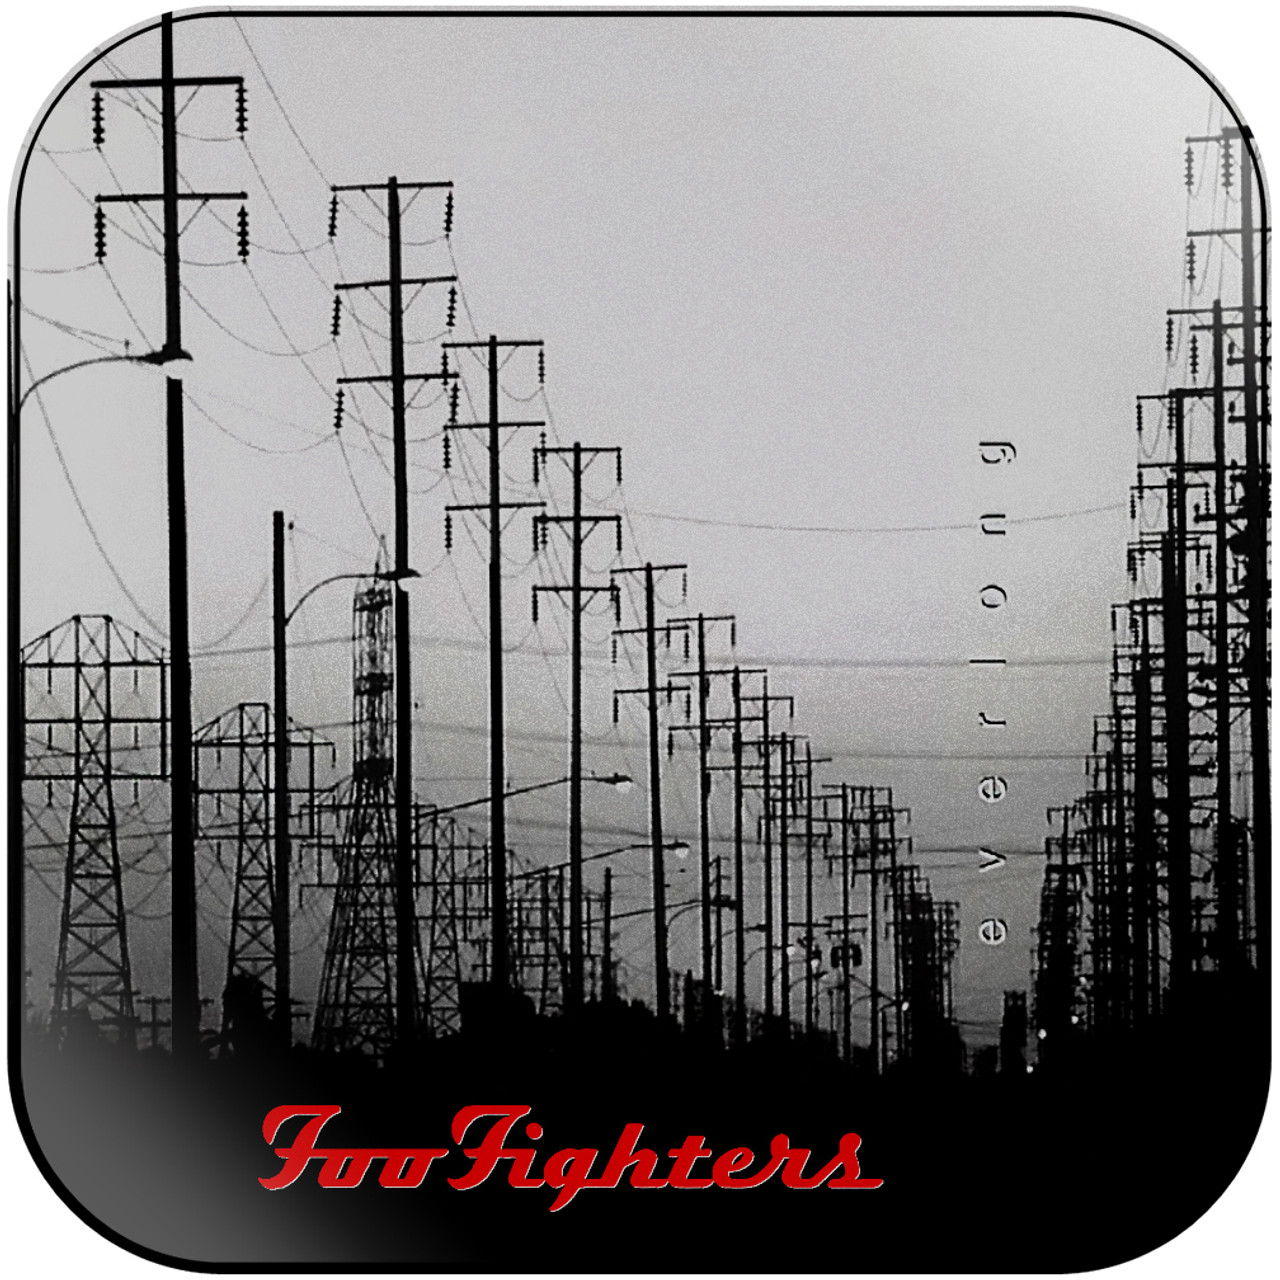 Foo Fighters Everlong 3 Album Cover Sticker